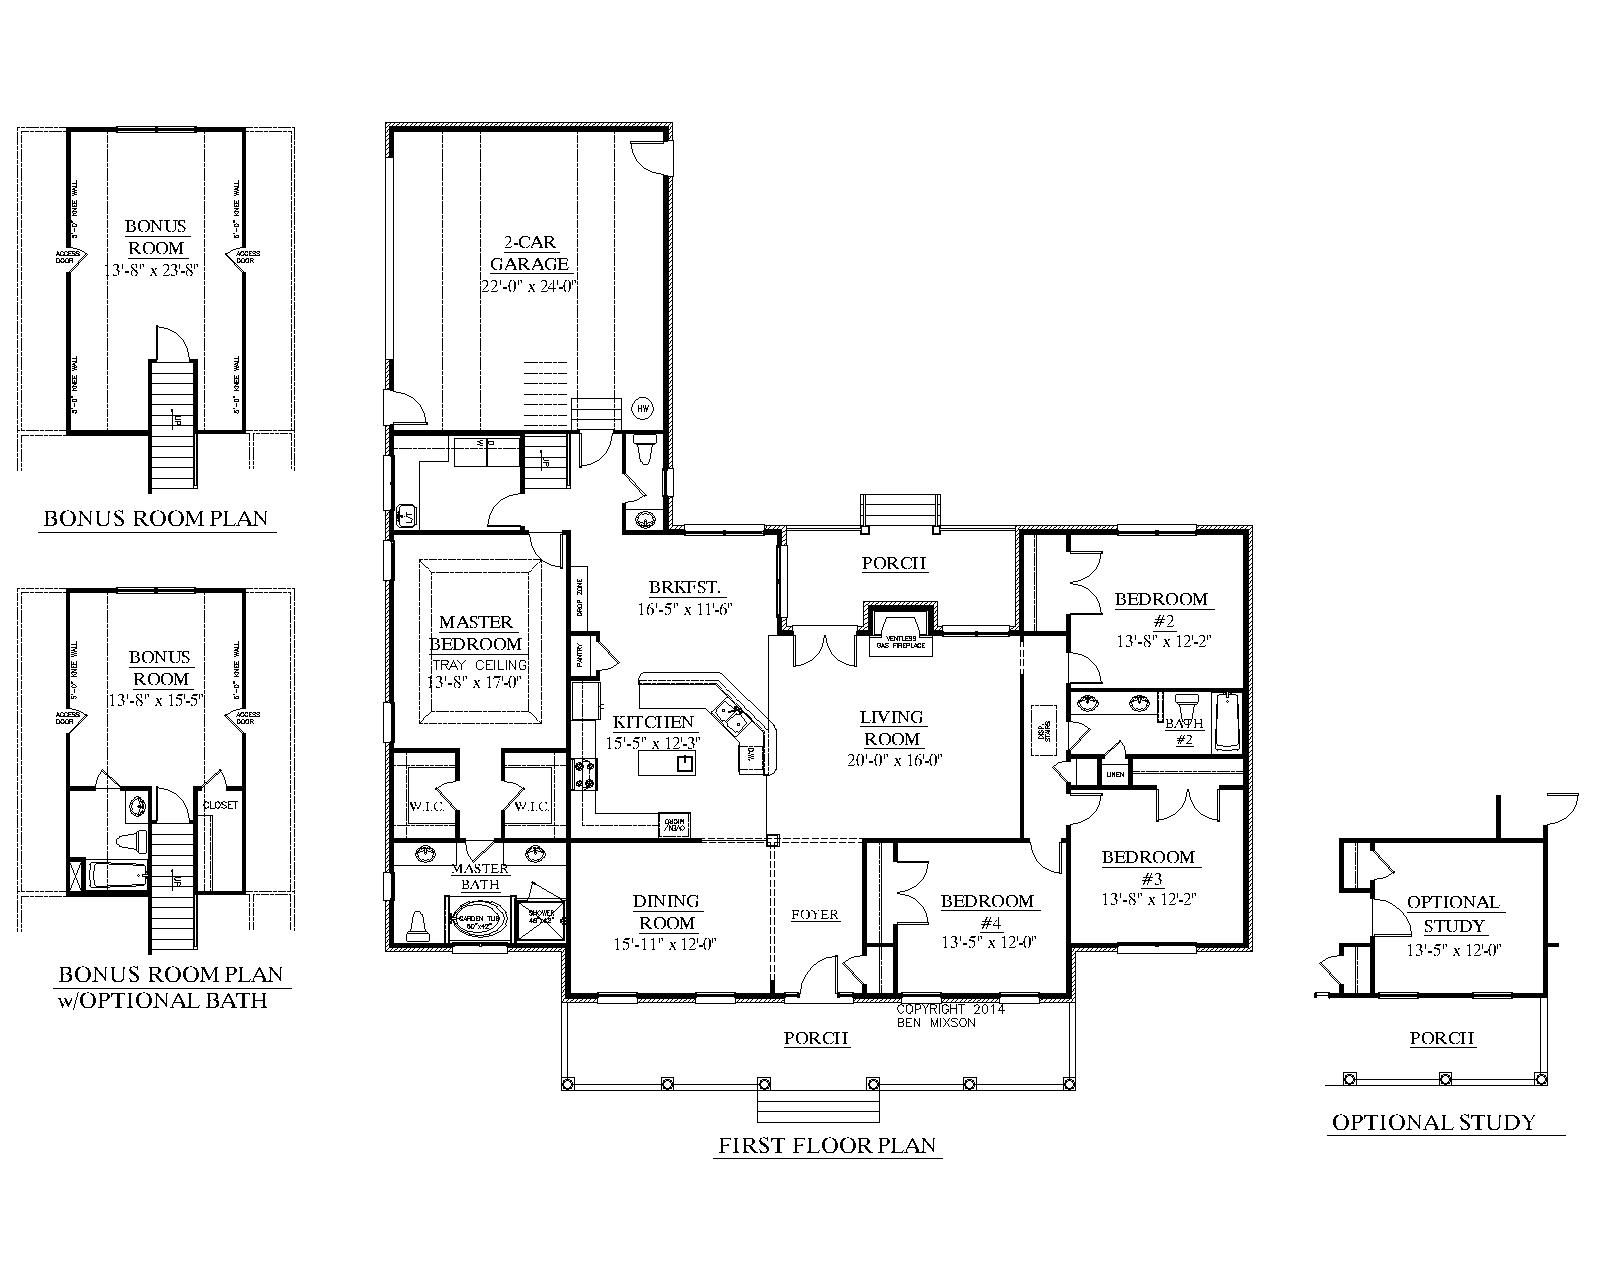 House Plan 2428 B The Springfield B Floor Plan Beautiful